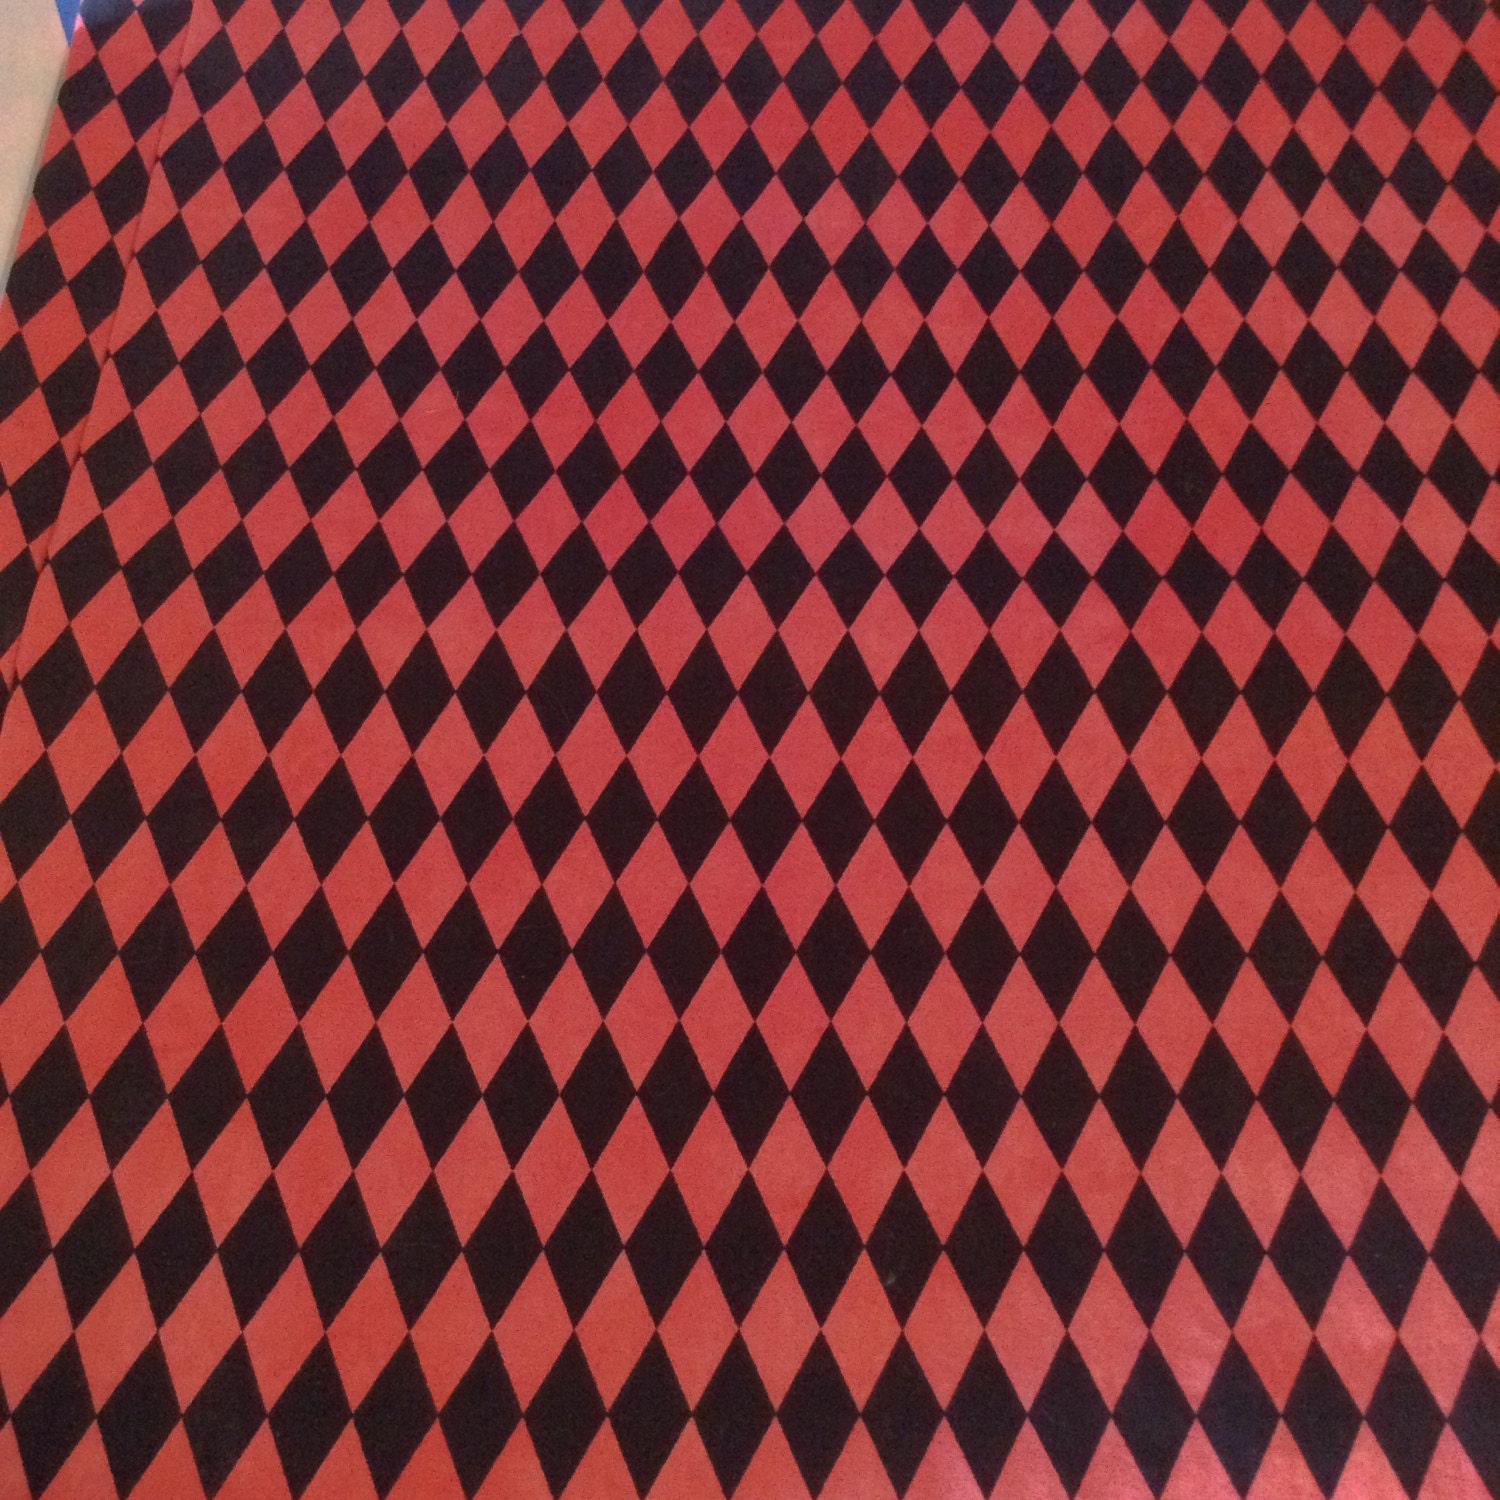 Sale Harley Quinn Fabric Fabric By The Yard Red And Black